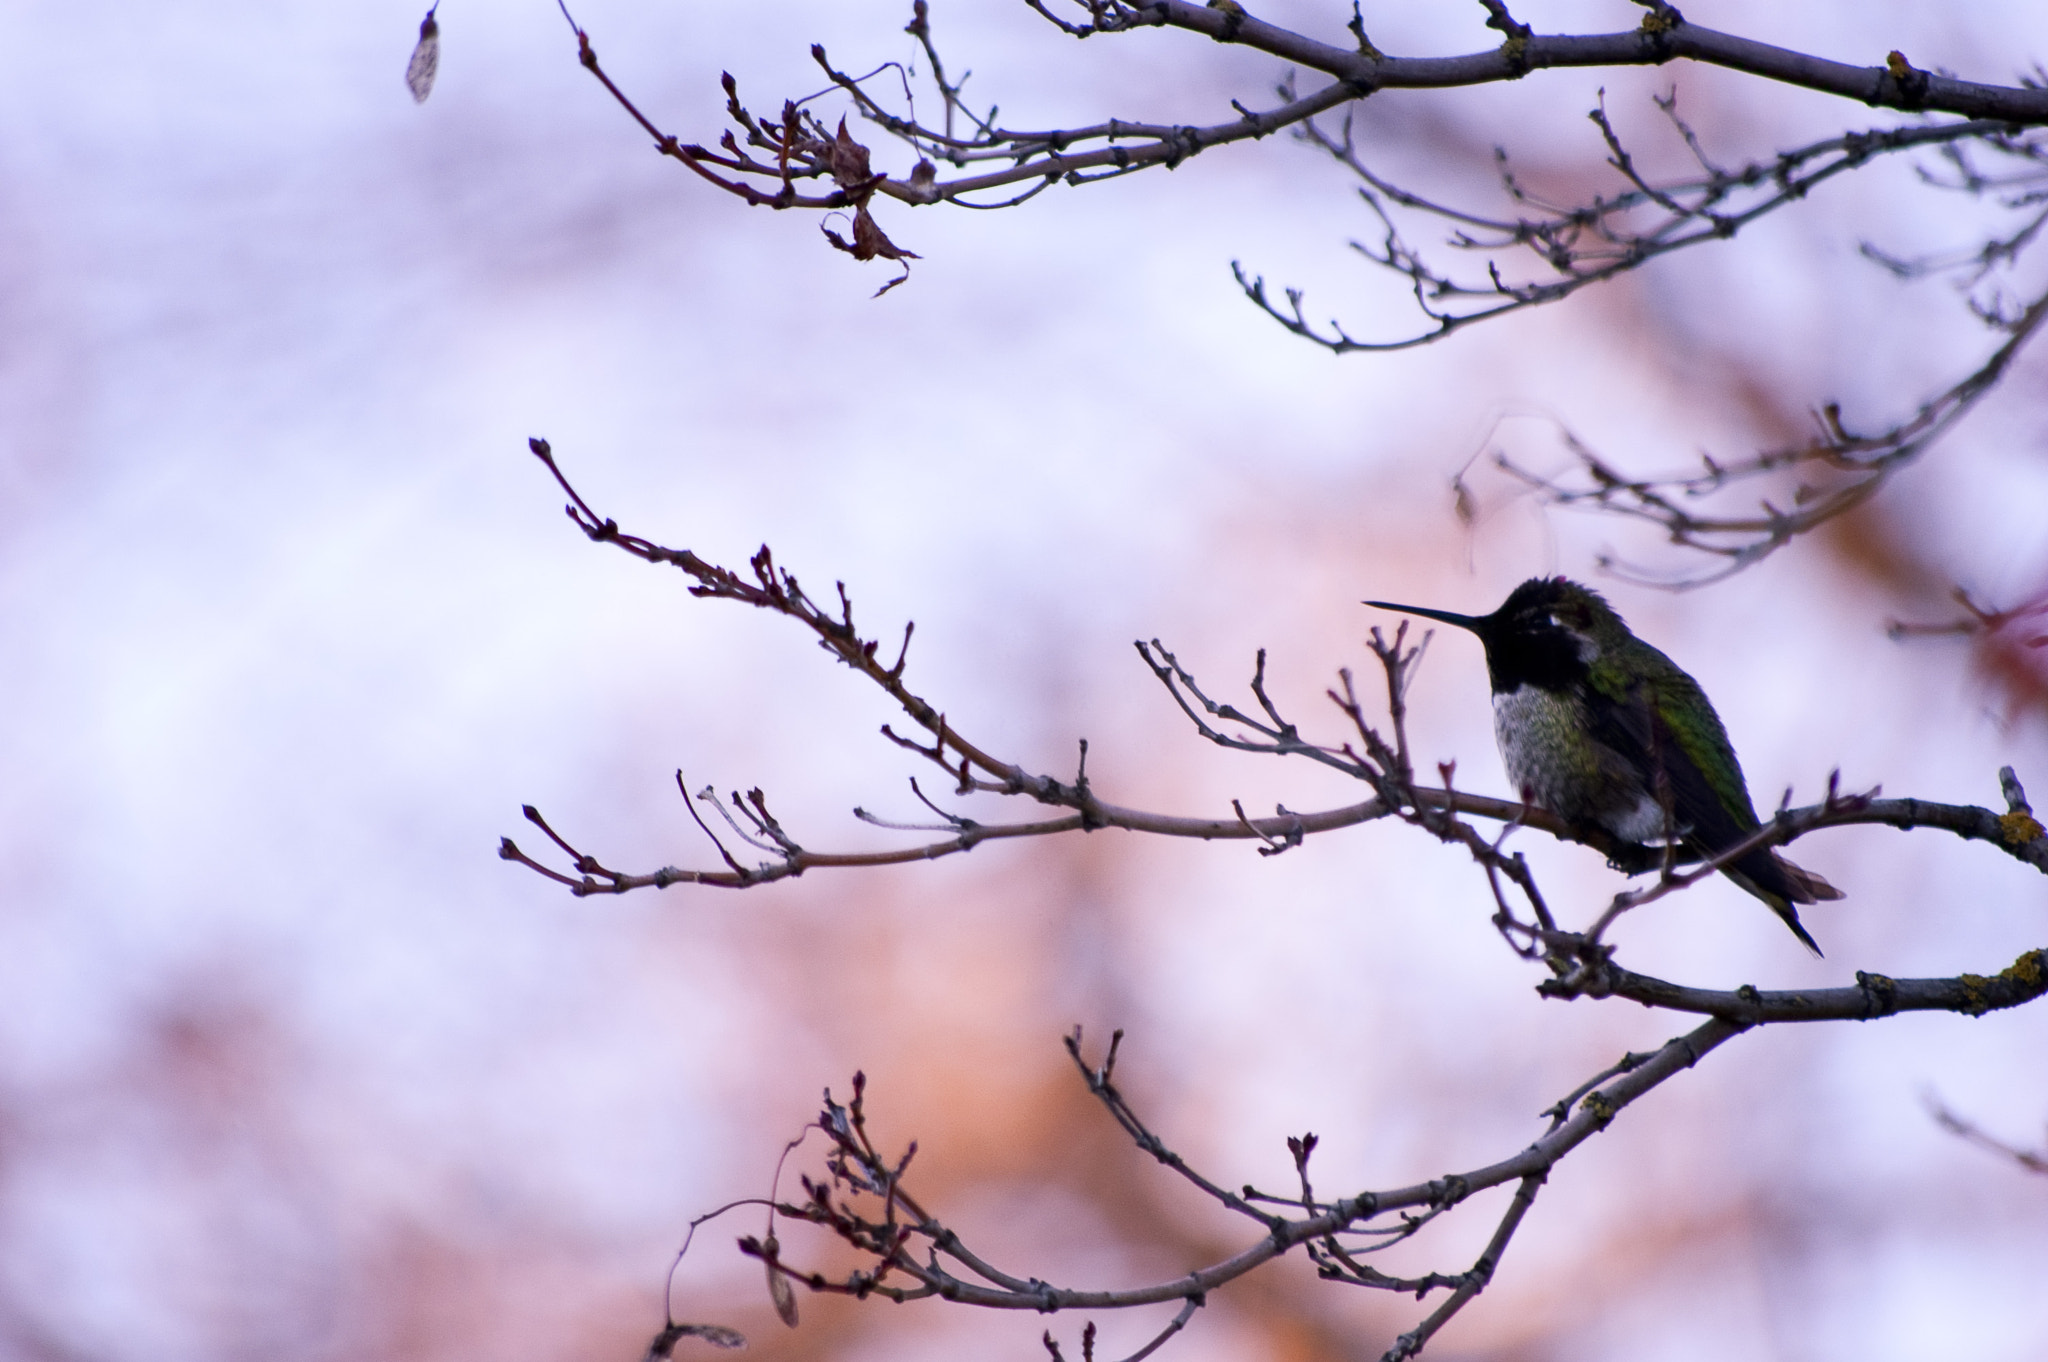 Photograph Humming in Winter by Richard Michael Johnson on 500px